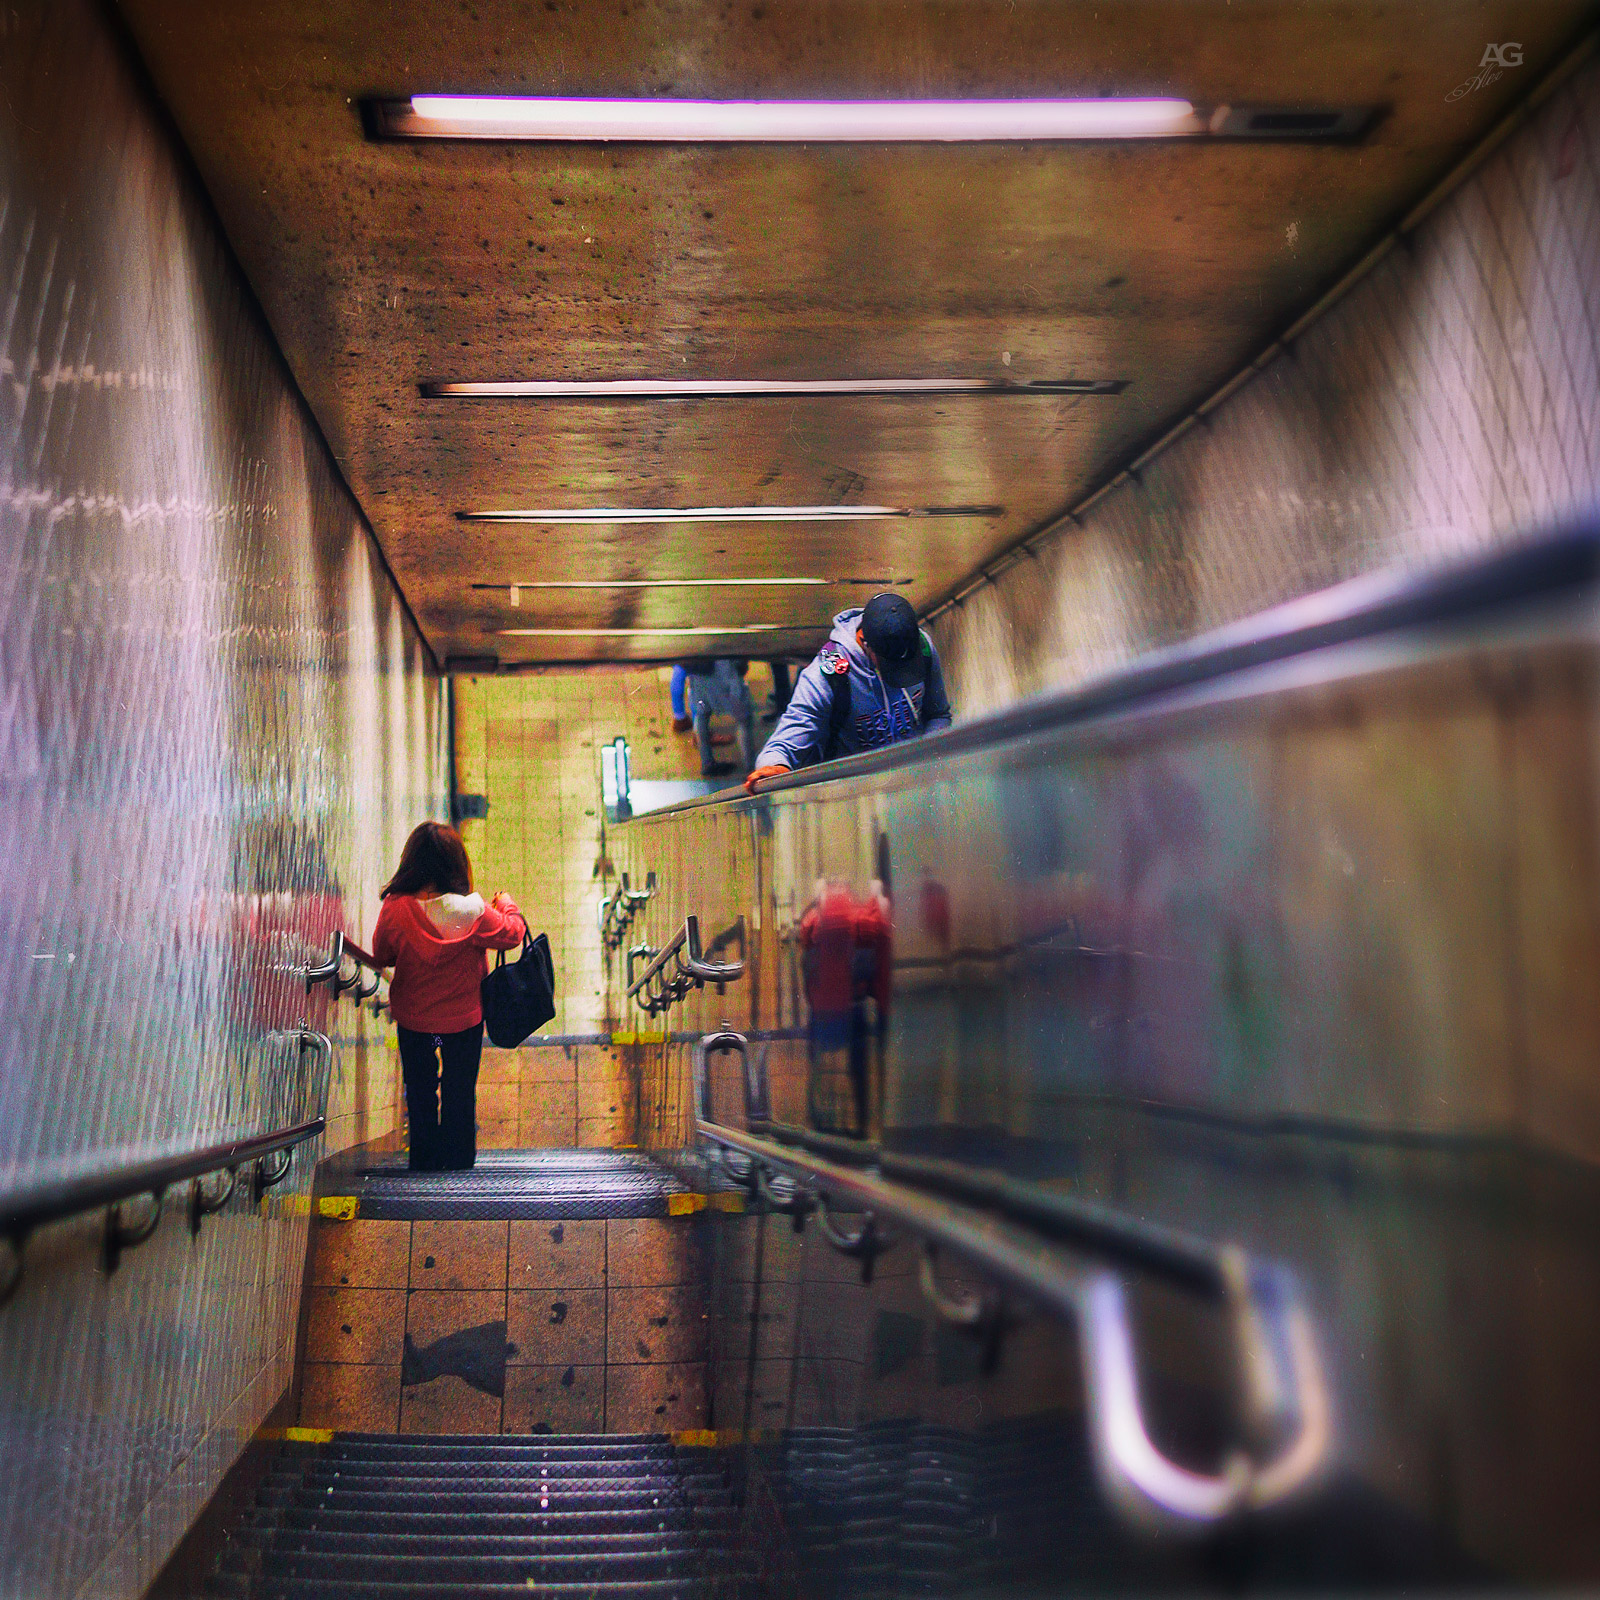 EscalatorGoingDownToLexingtonAvenueTrainStation_warped_1600